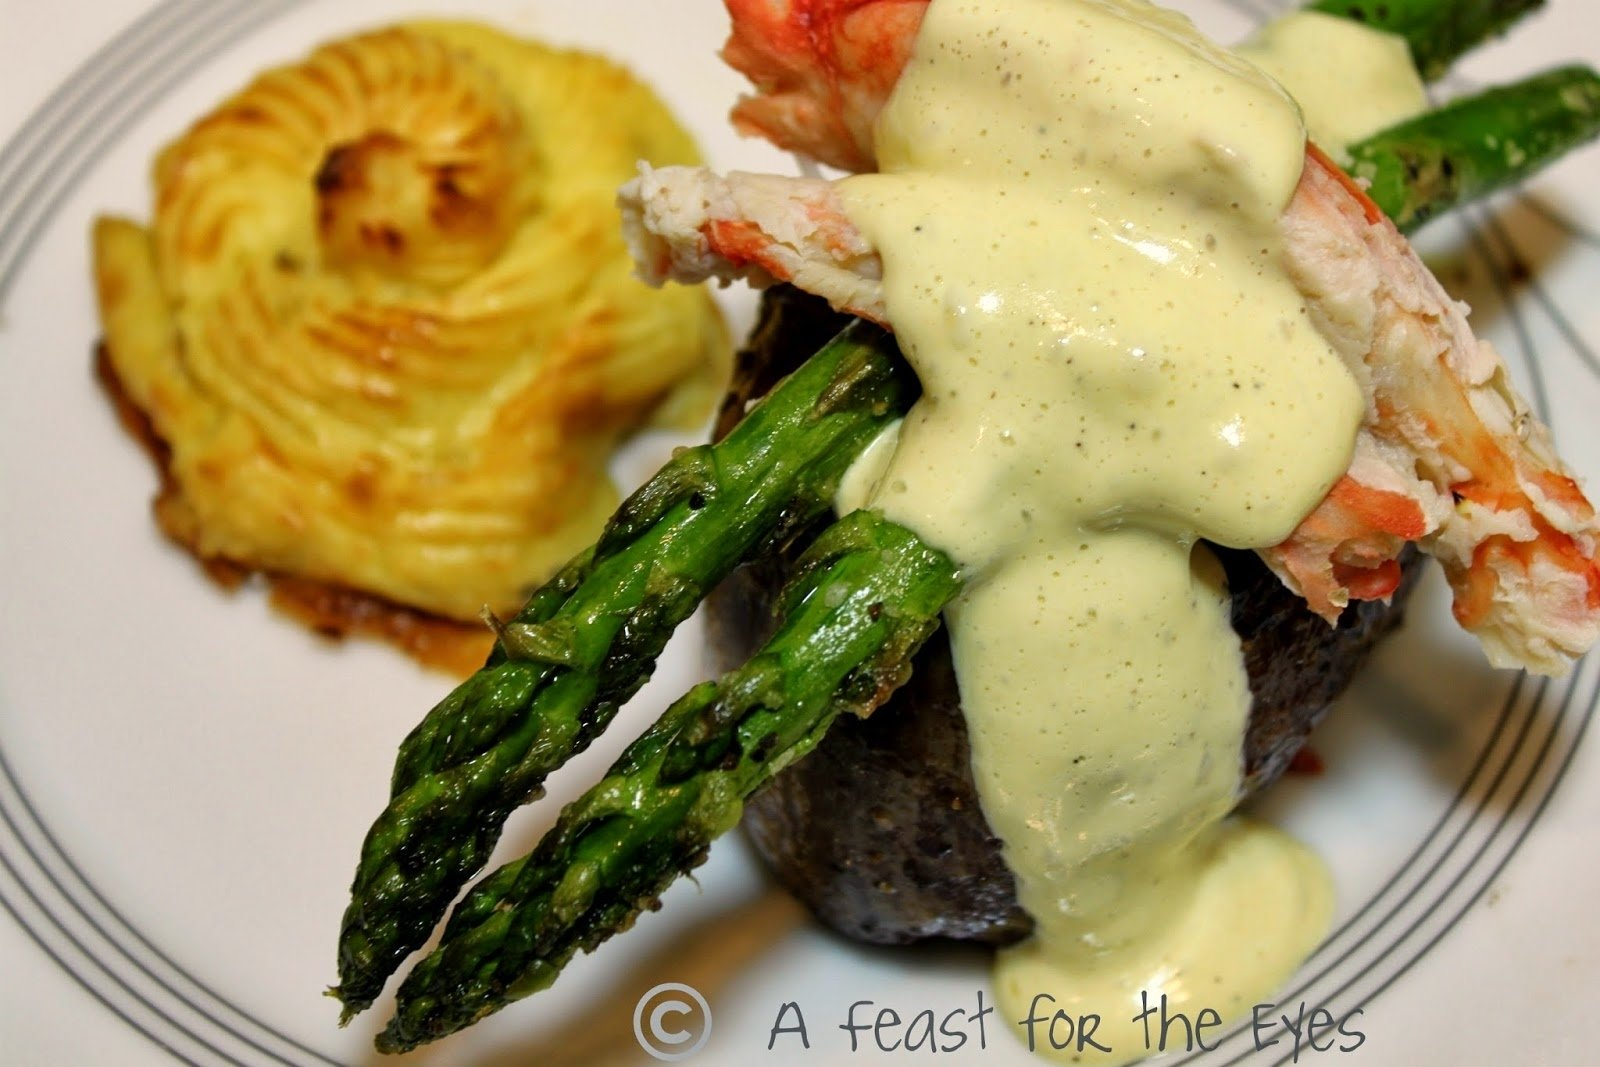 10 Trendy Surf And Turf Menu Ideas a feast for the eyes surf turf steak oscar with duchess potatoes 2020